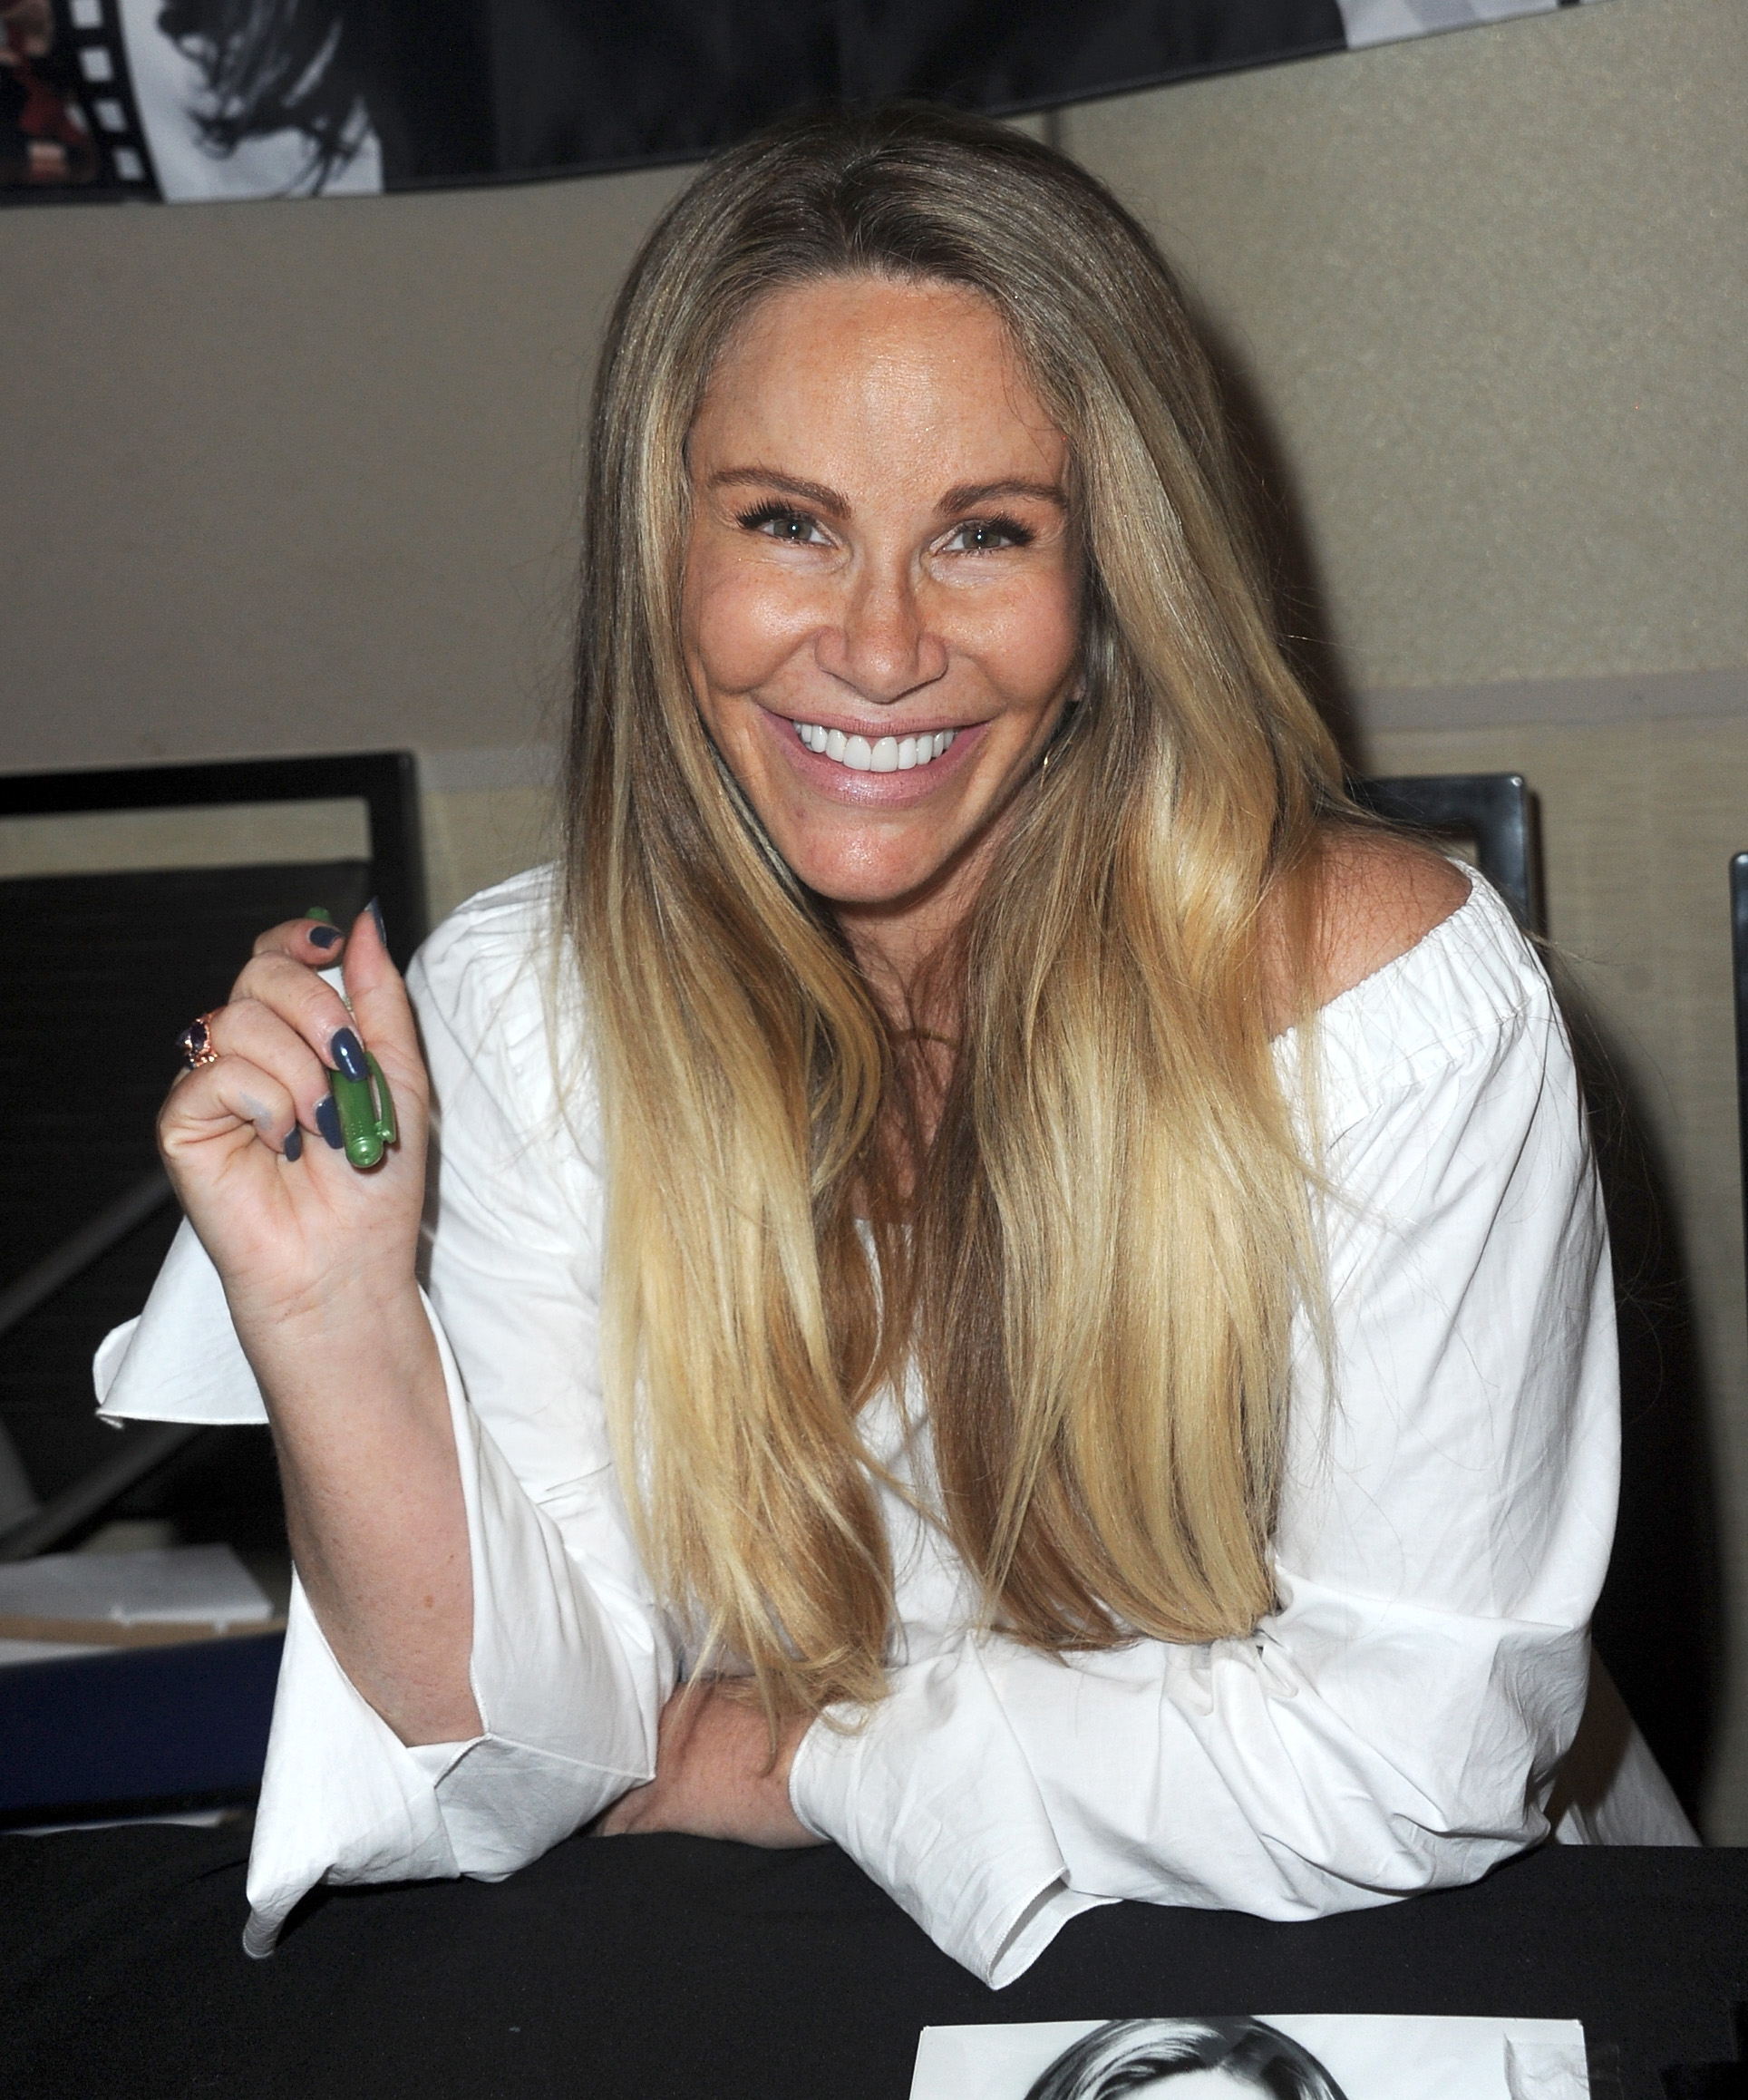 Tawny Kitaen at The Hollywood Show held at Westin LAX Hotel on October 21, 2017 in Los Angeles, California.